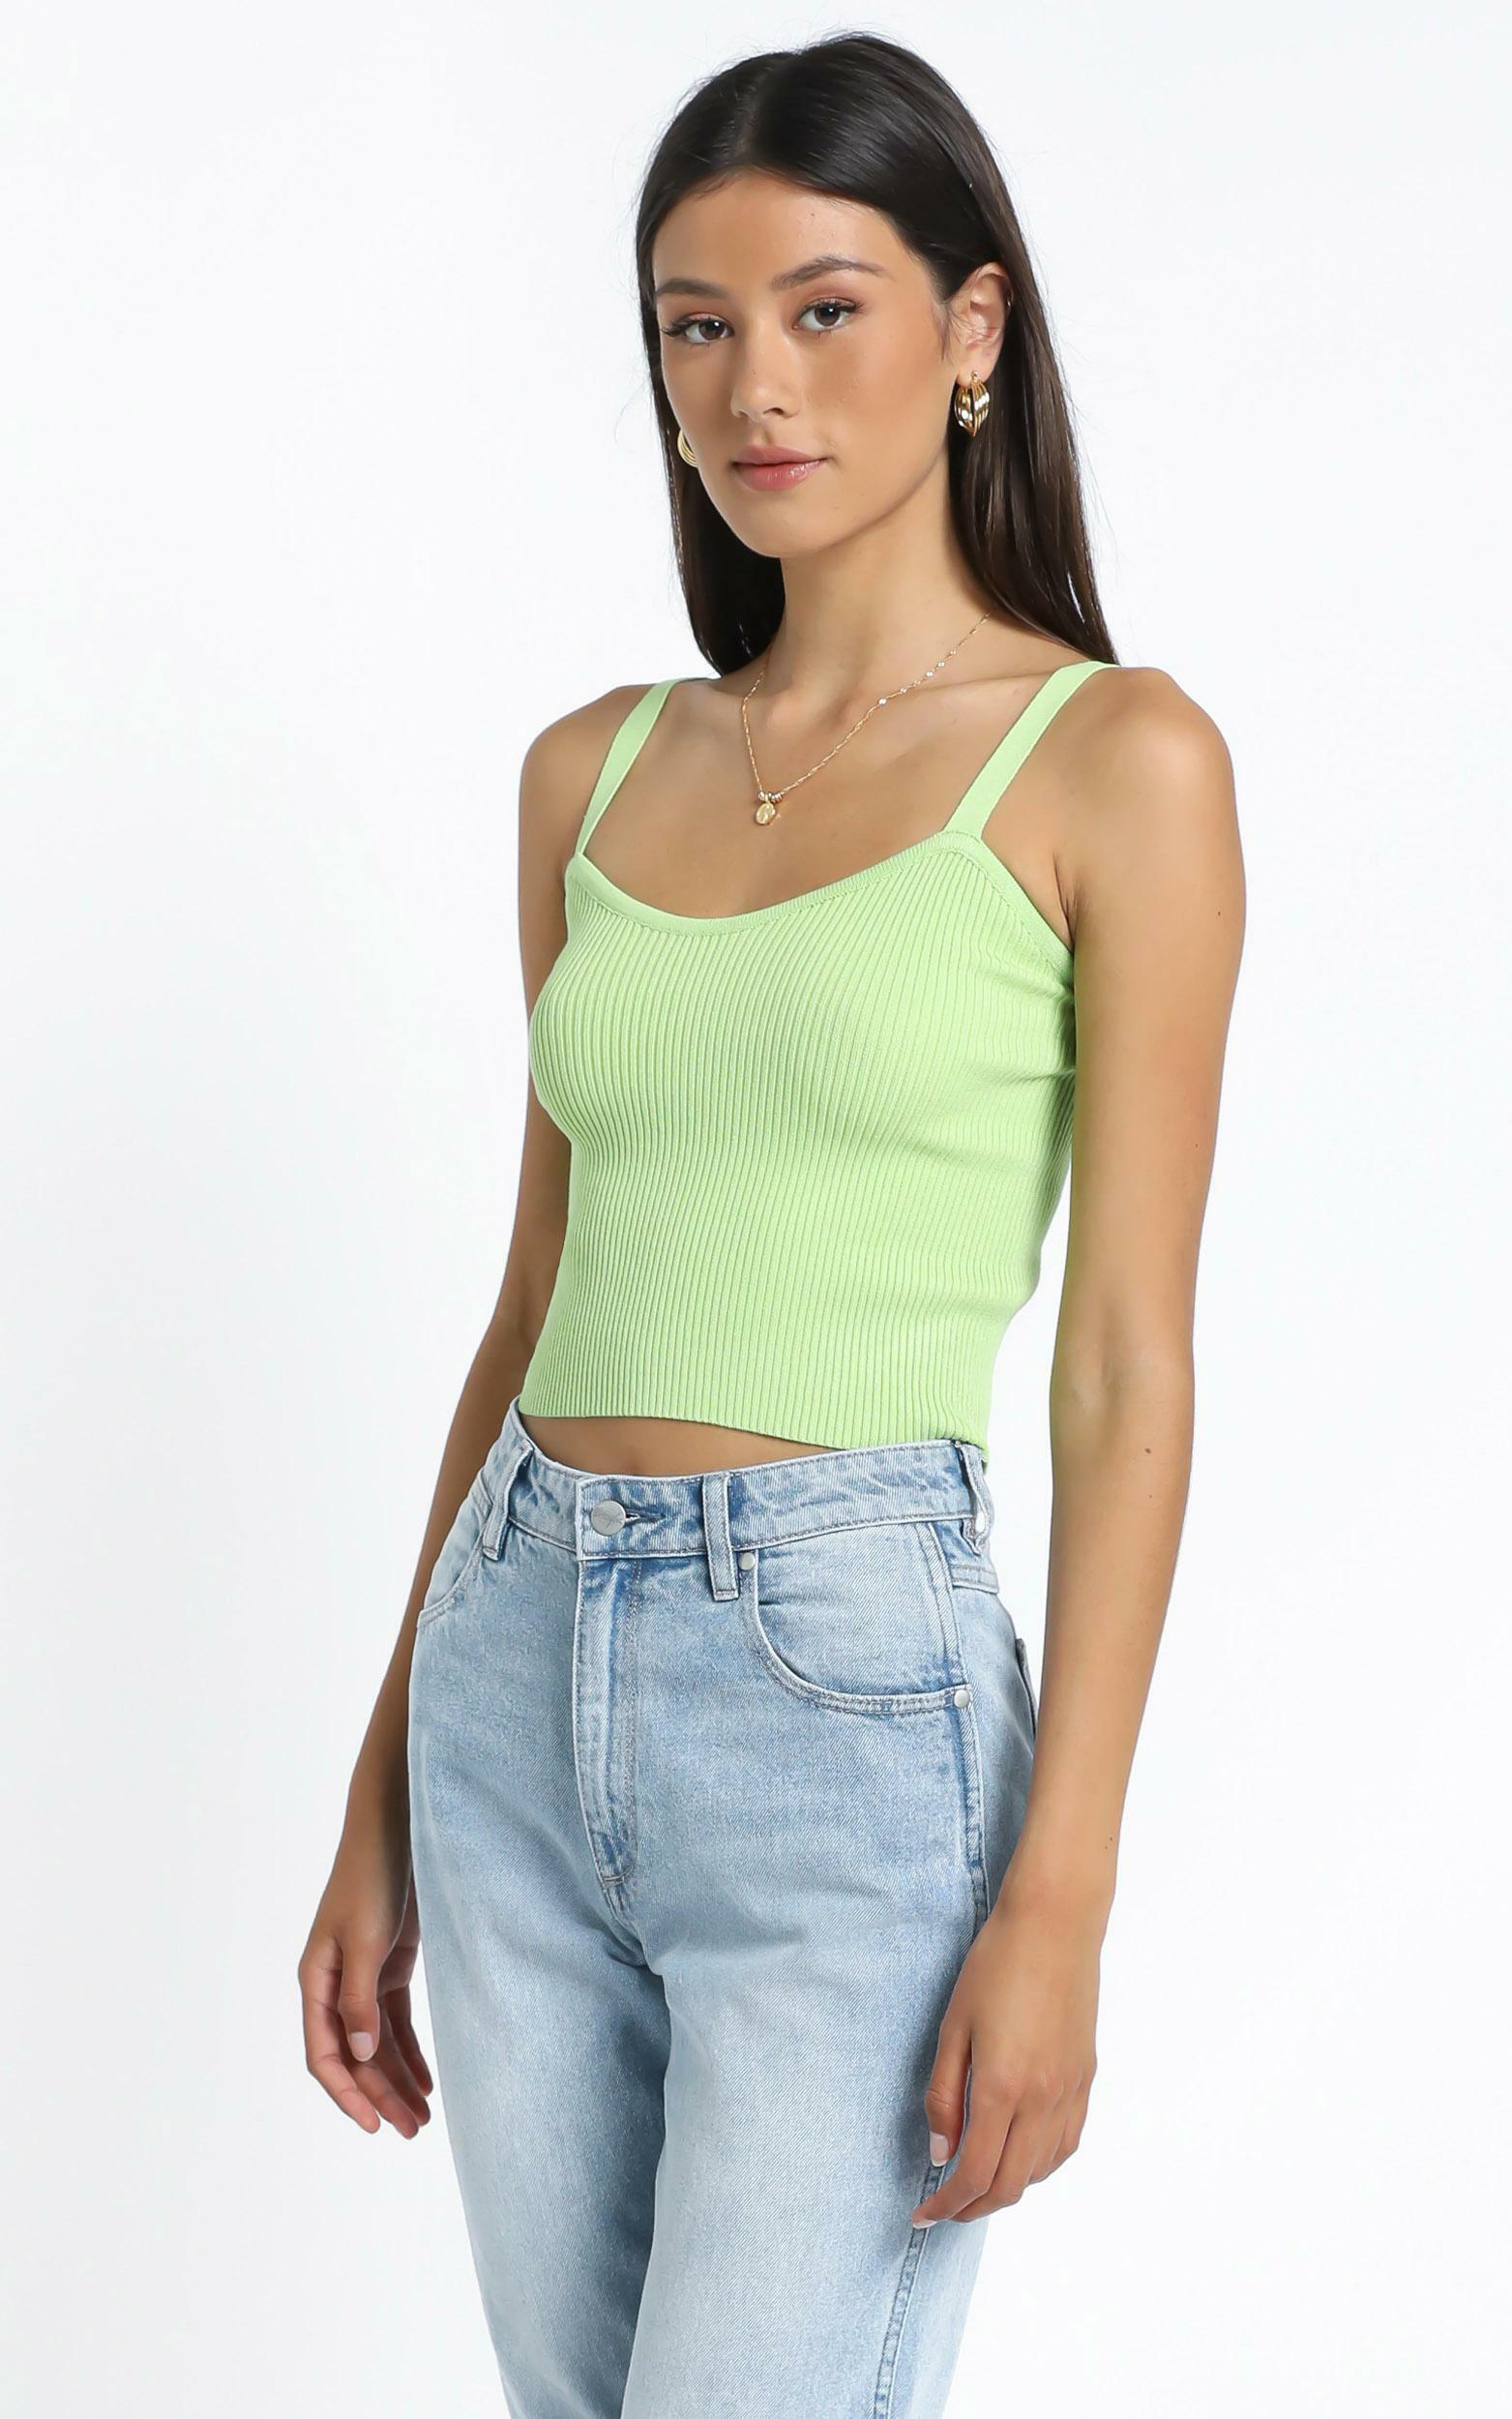 Ayla Knit Top in Lime - M/L, Green, hi-res image number null